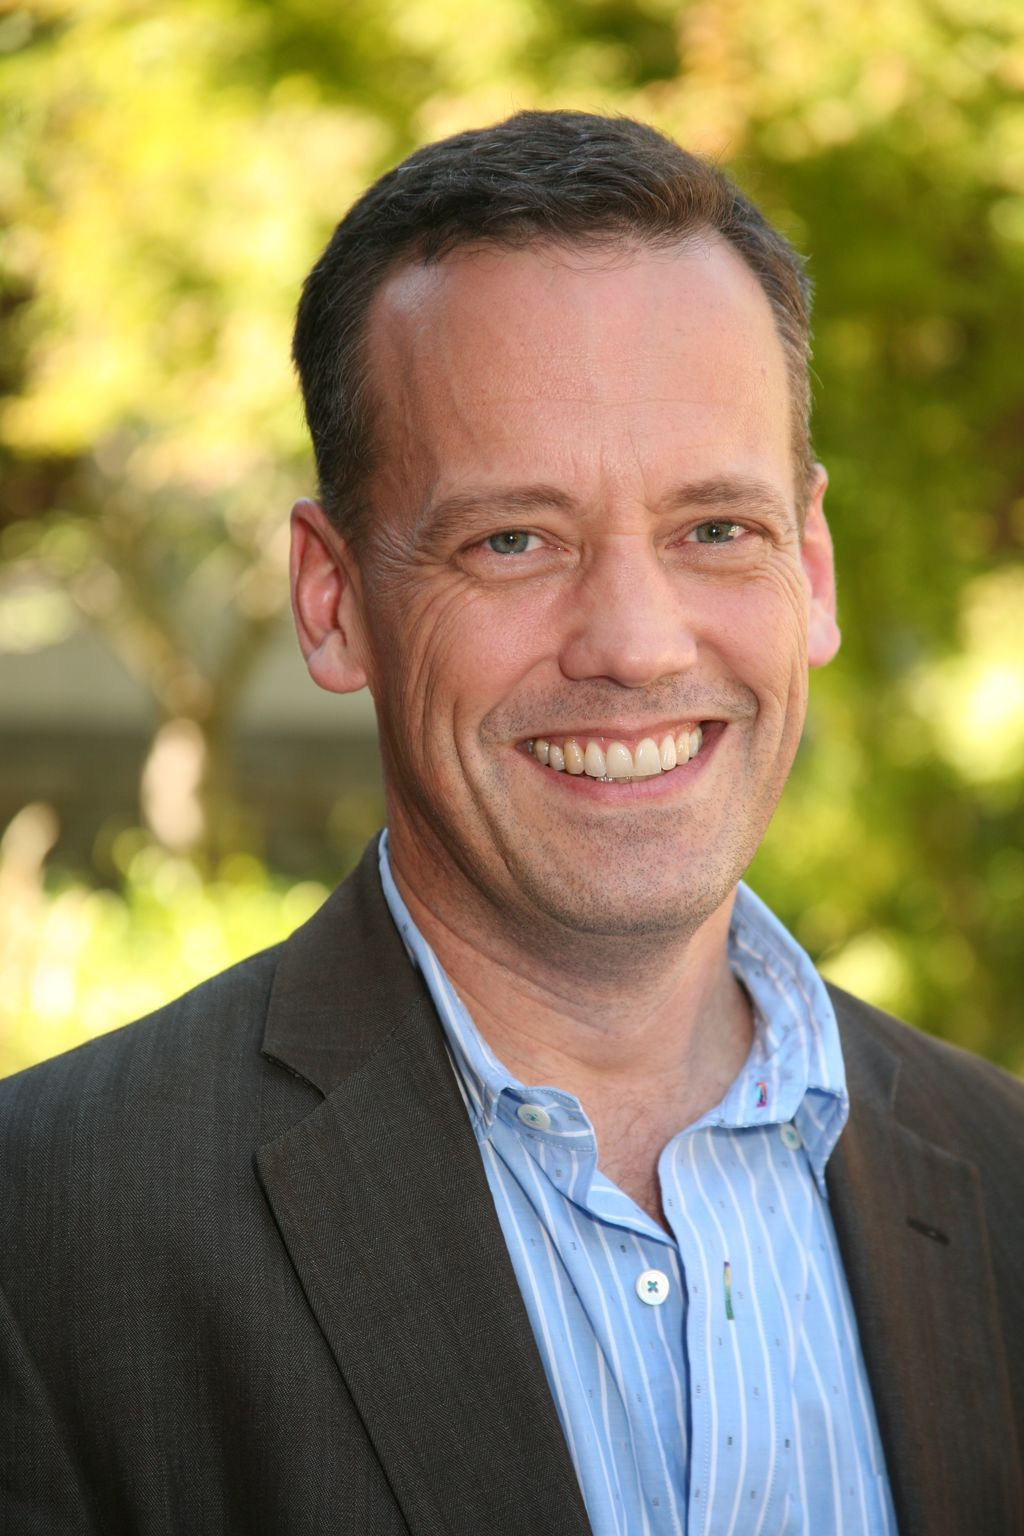 The 58-year old son of father (?) and mother(?) Dee Bradley Baker in 2021 photo. Dee Bradley Baker earned a  million dollar salary - leaving the net worth at  million in 2021